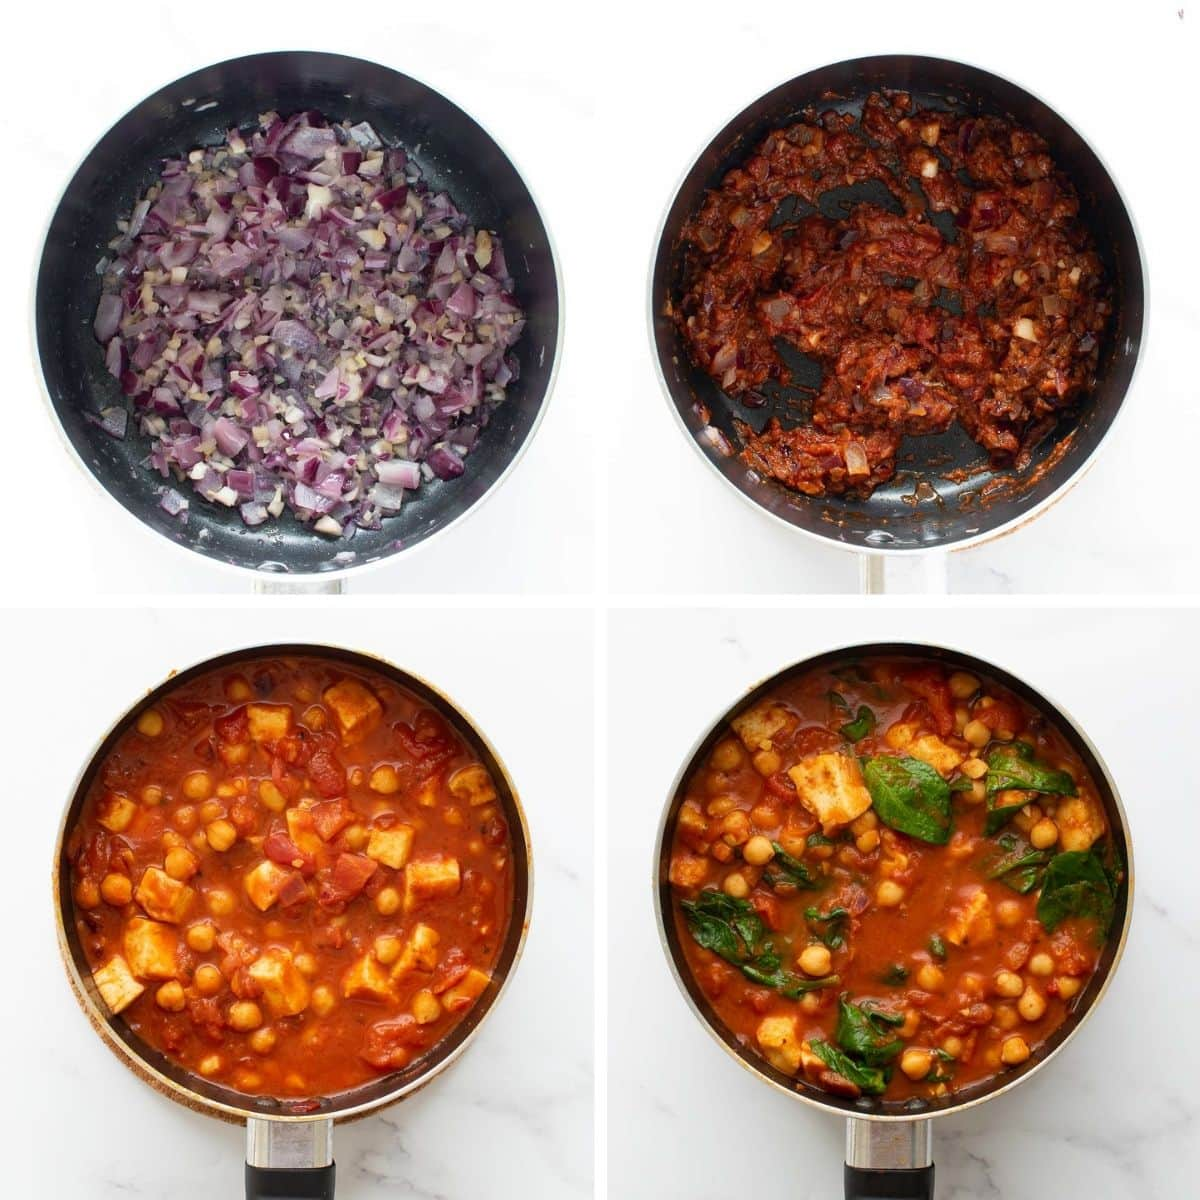 Step by step images showing how to make Chickpea and Halloumi Curry.